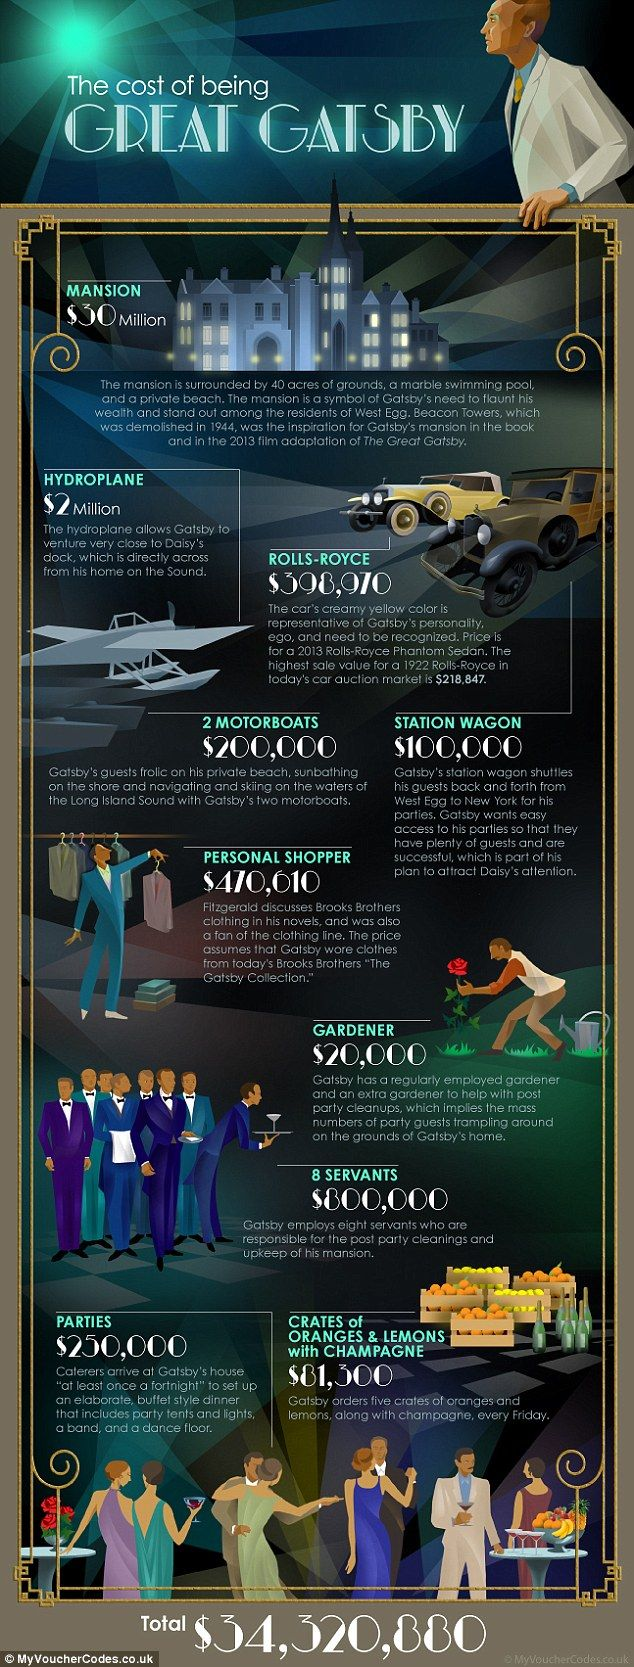 Cash to splash: If you want to replicate Gatsby's lifestyle today, it'll cost you a staggering $34.3 million, according to a new calculation...